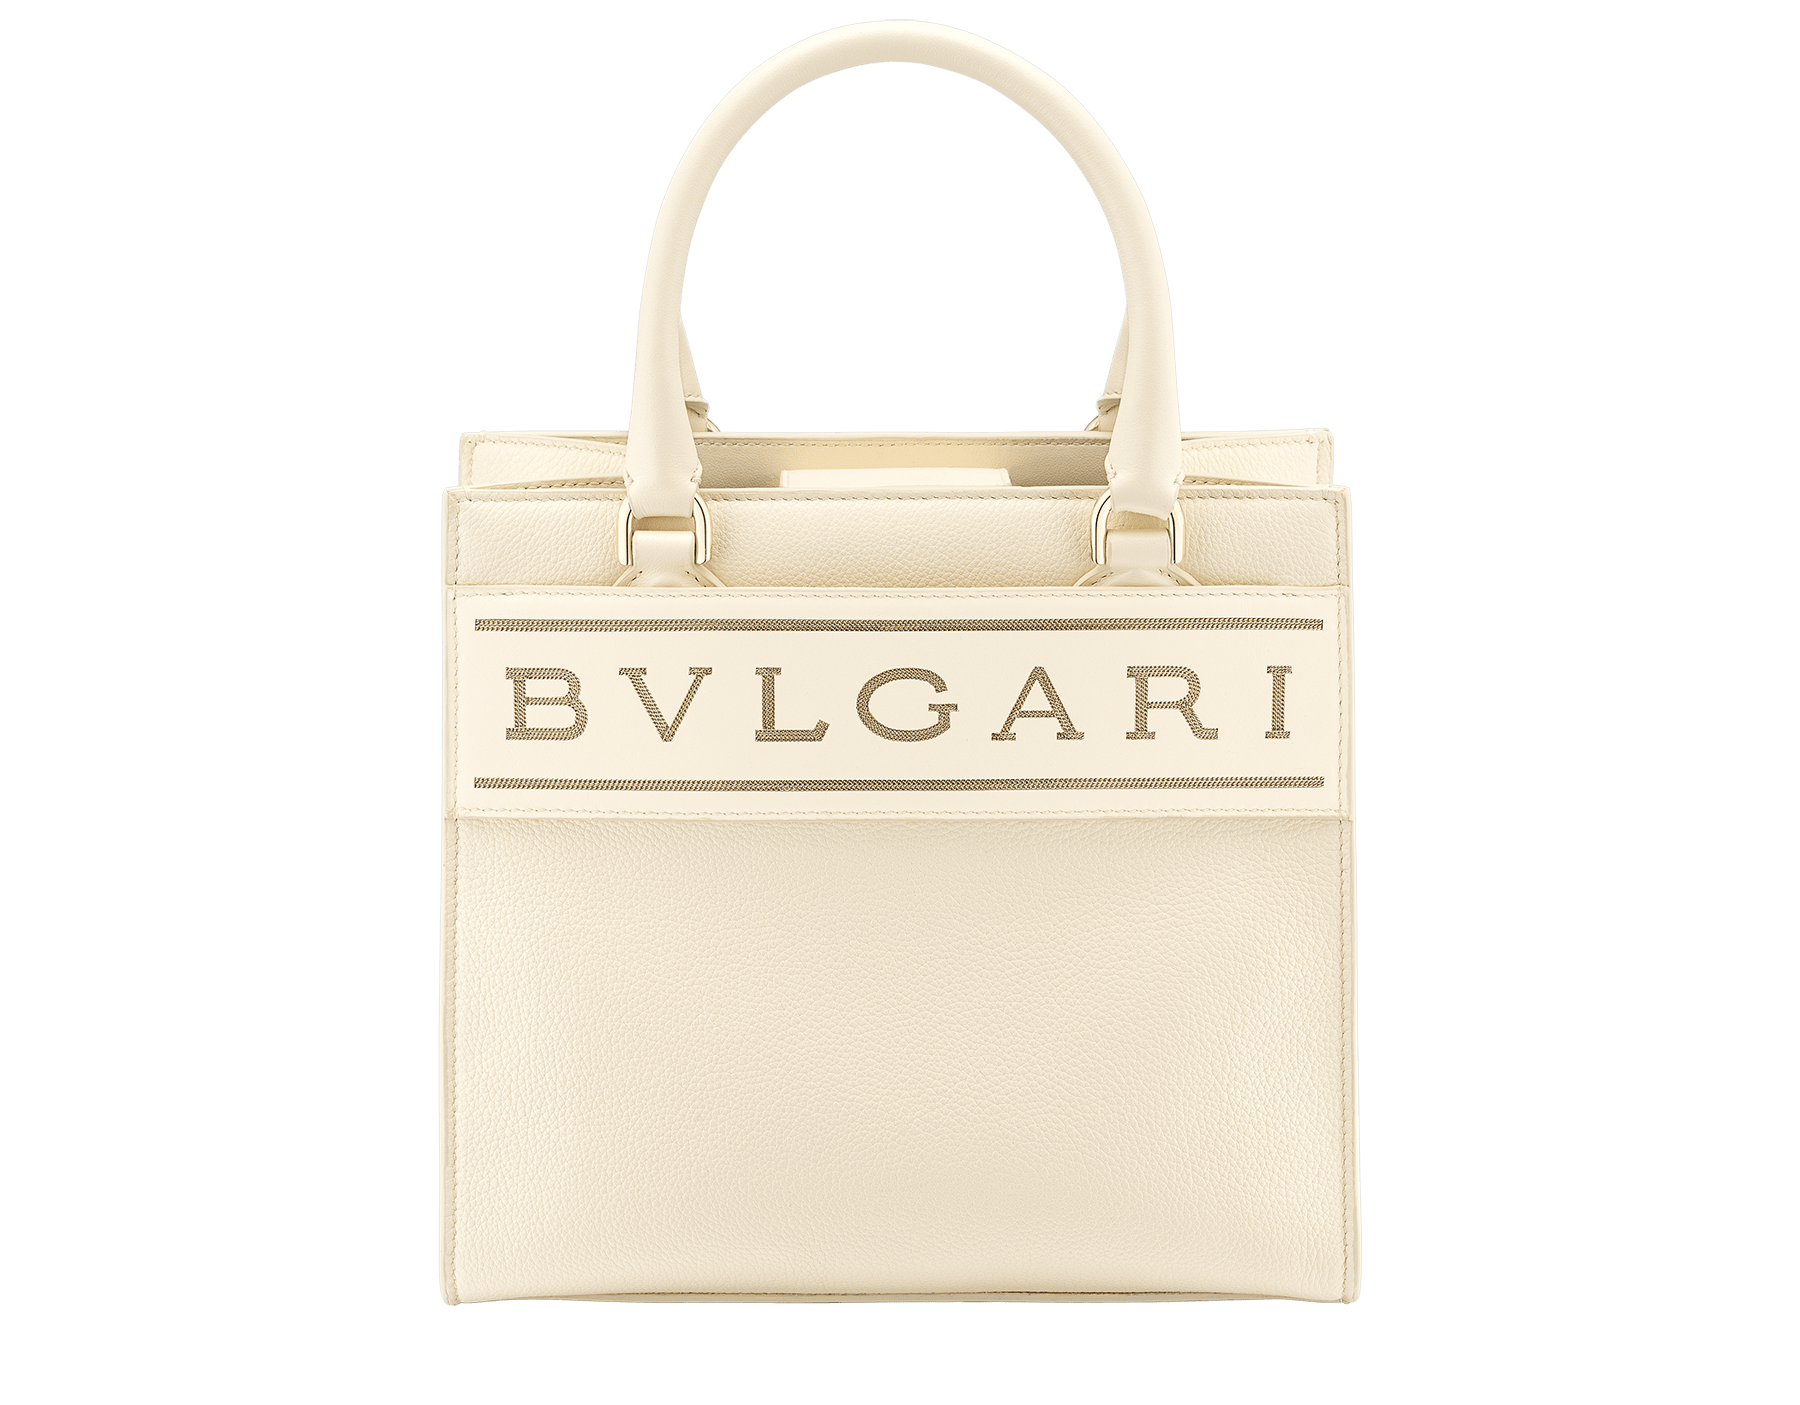 """Bvlgari Logo"" small tote bag in Ivory Opal white calf leather, with Beet Amethyst purple grosgrain inner lining. Bvlgari logo featuring light gold-plated brass chain inserts on the Ivory Opal white calf leather. BVL-1159-CL image 1"